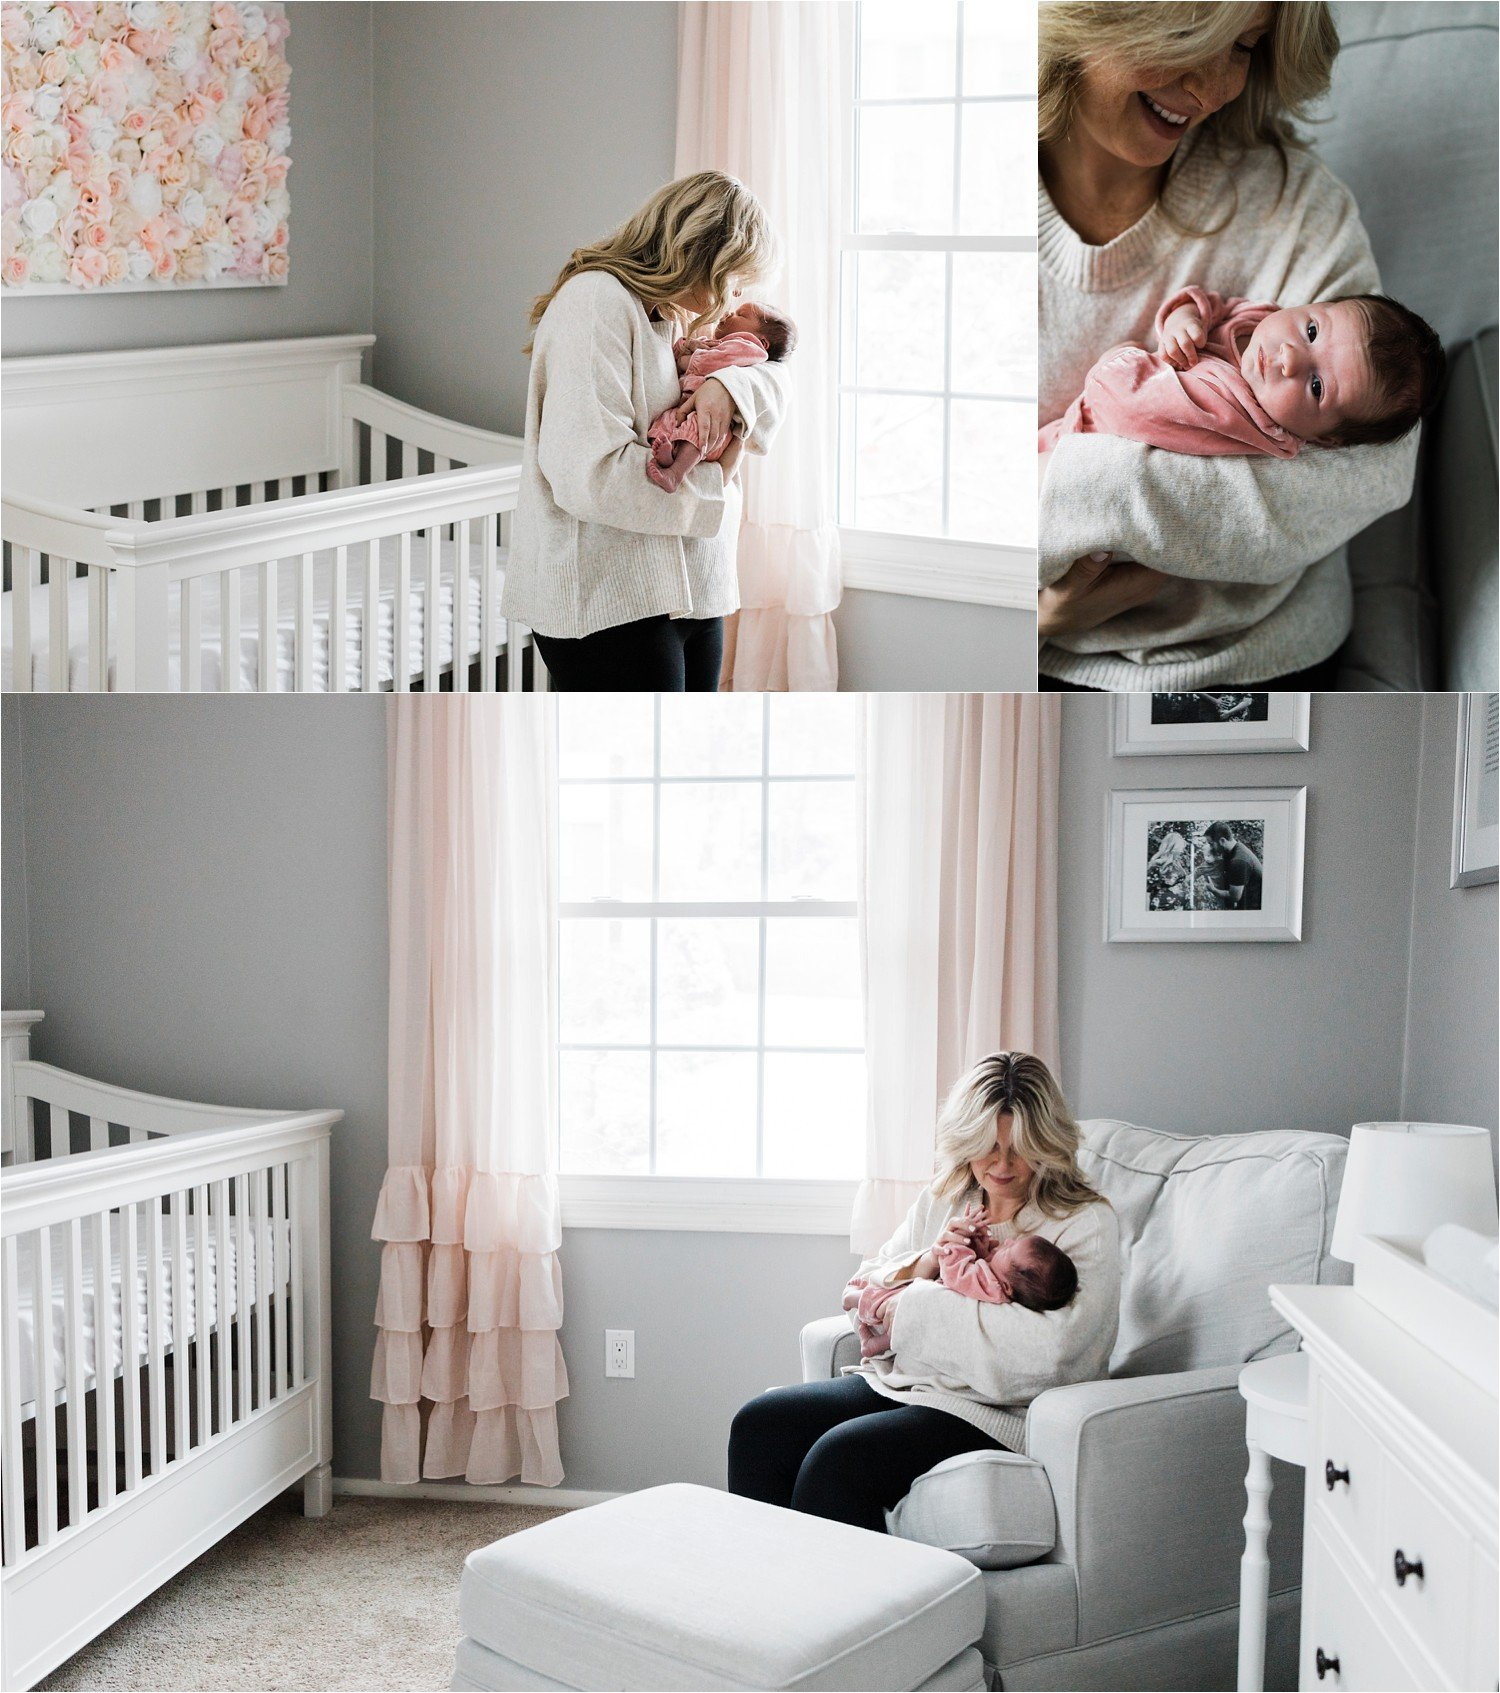 mother and newborn daughter in home nursery gray and pink